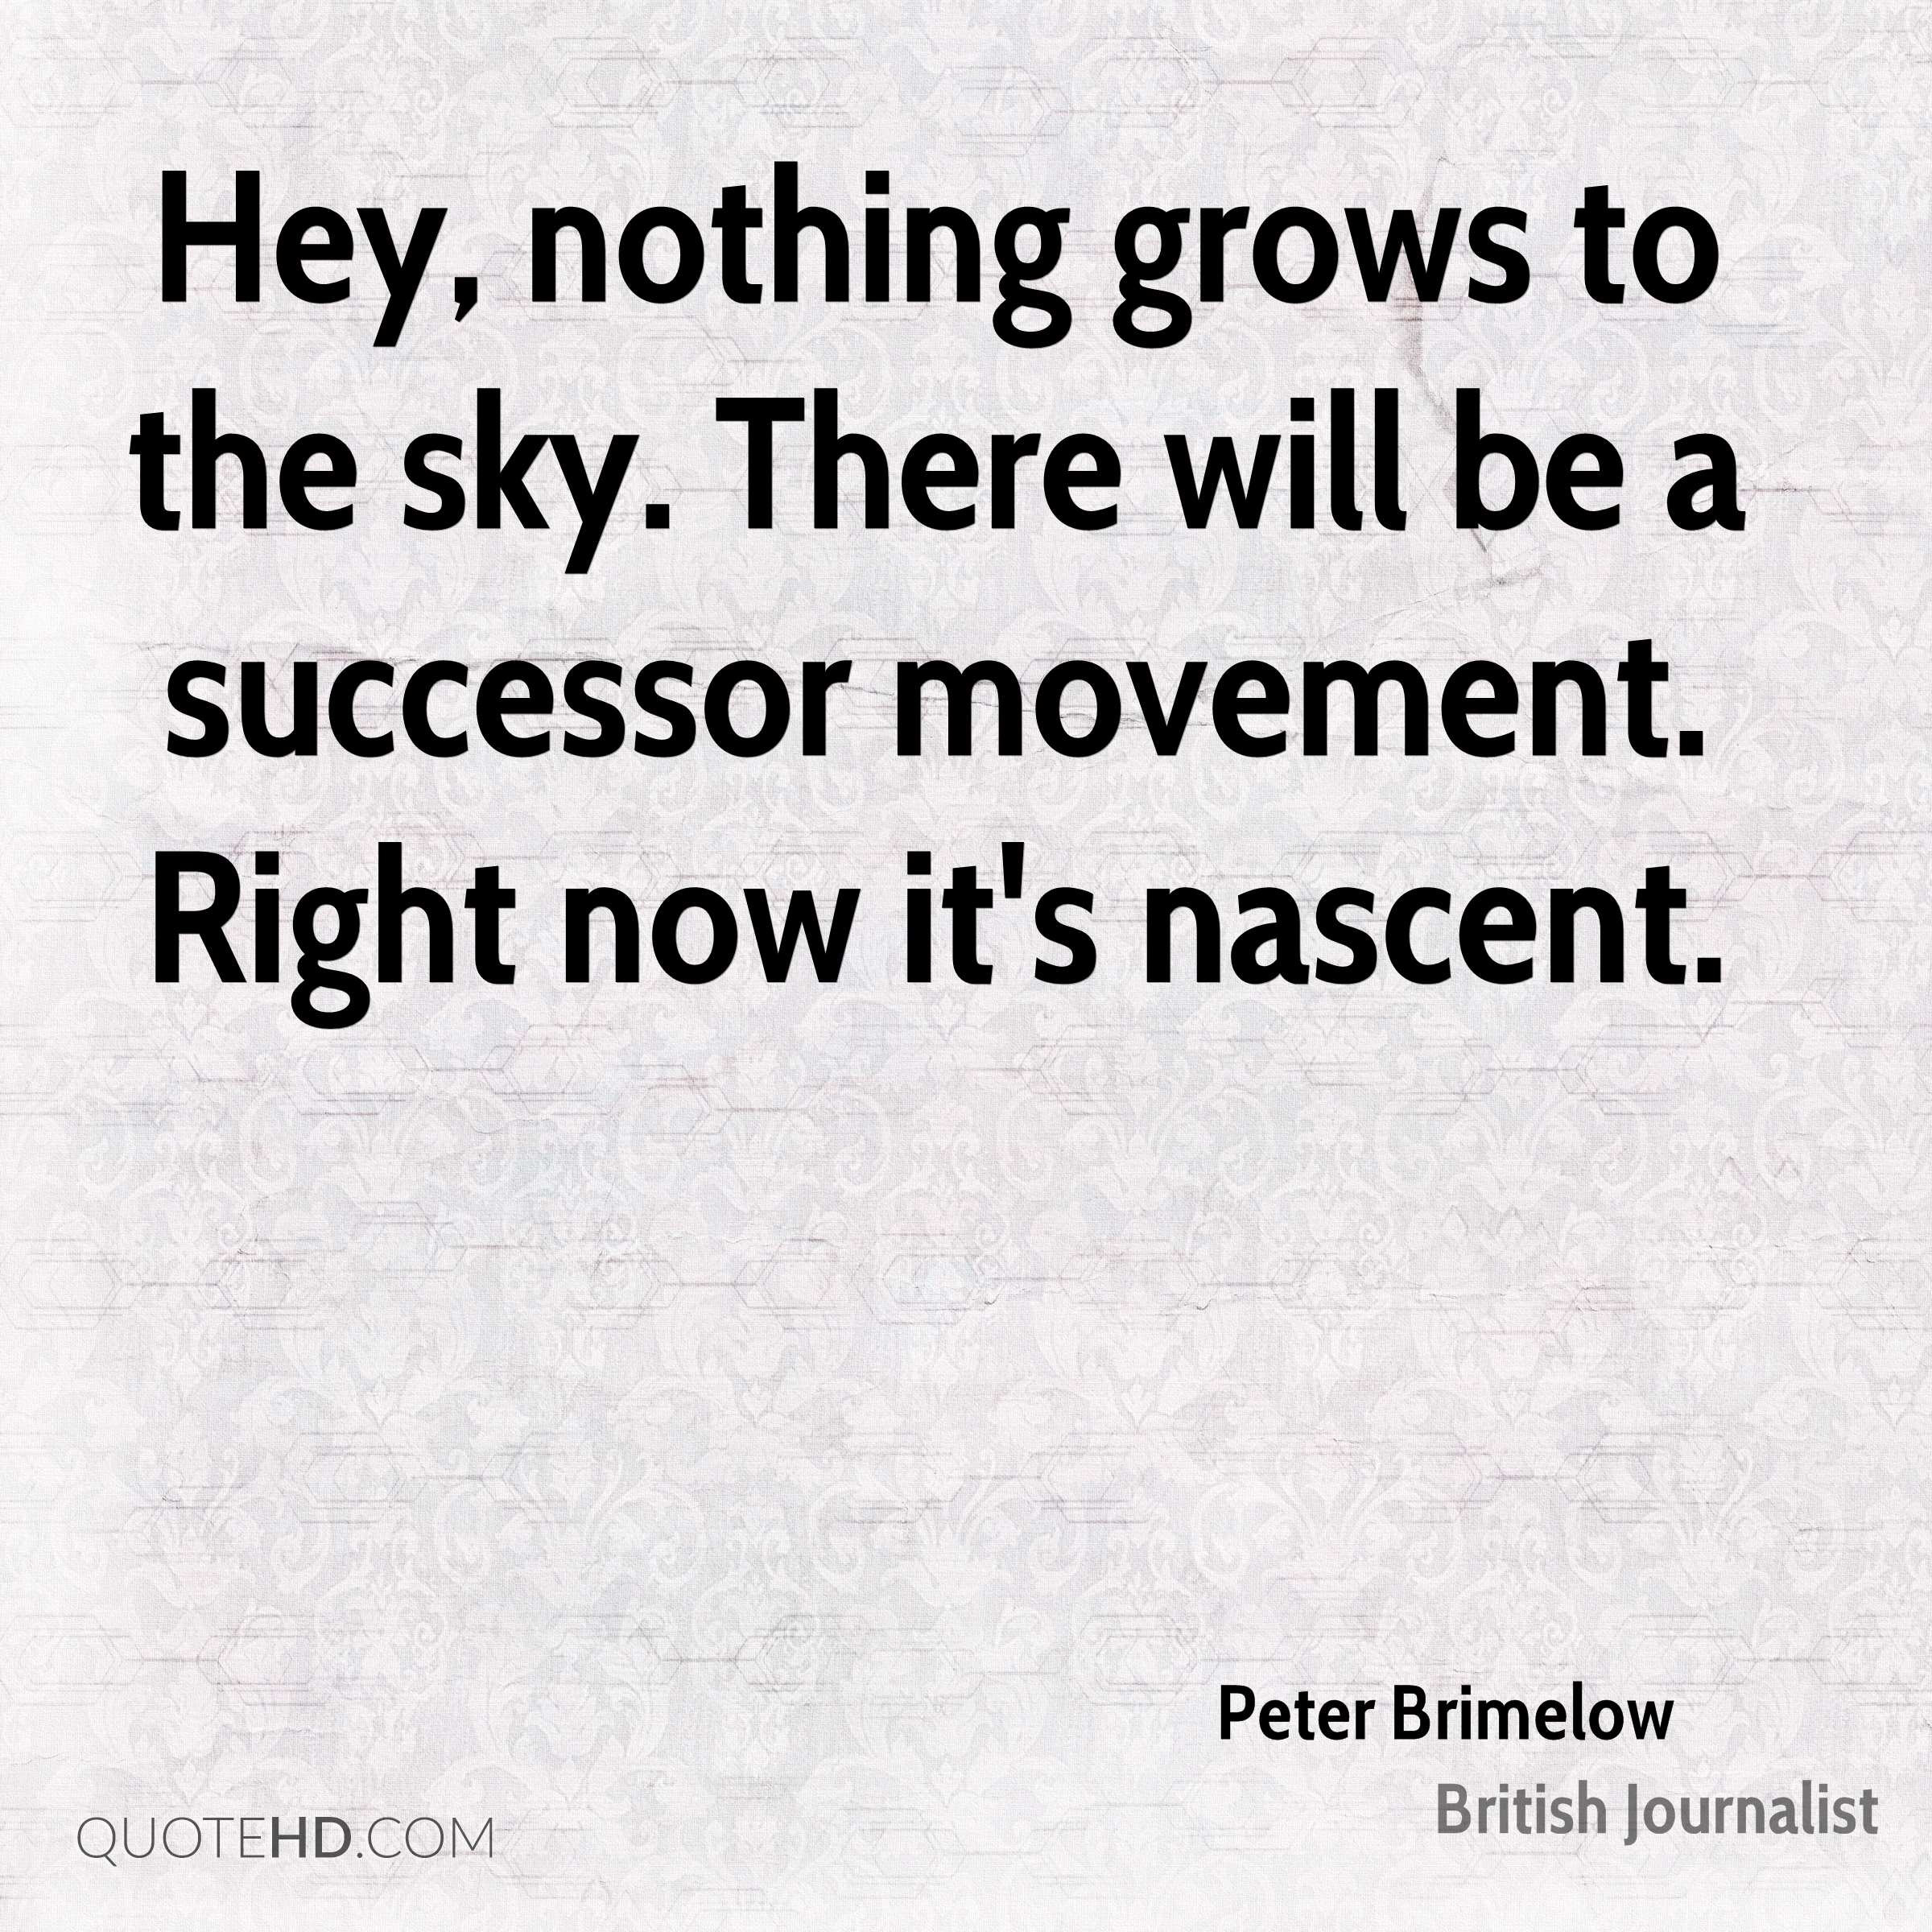 Hey, nothing grows to the sky. There will be a successor movement. Right now it's nascent.